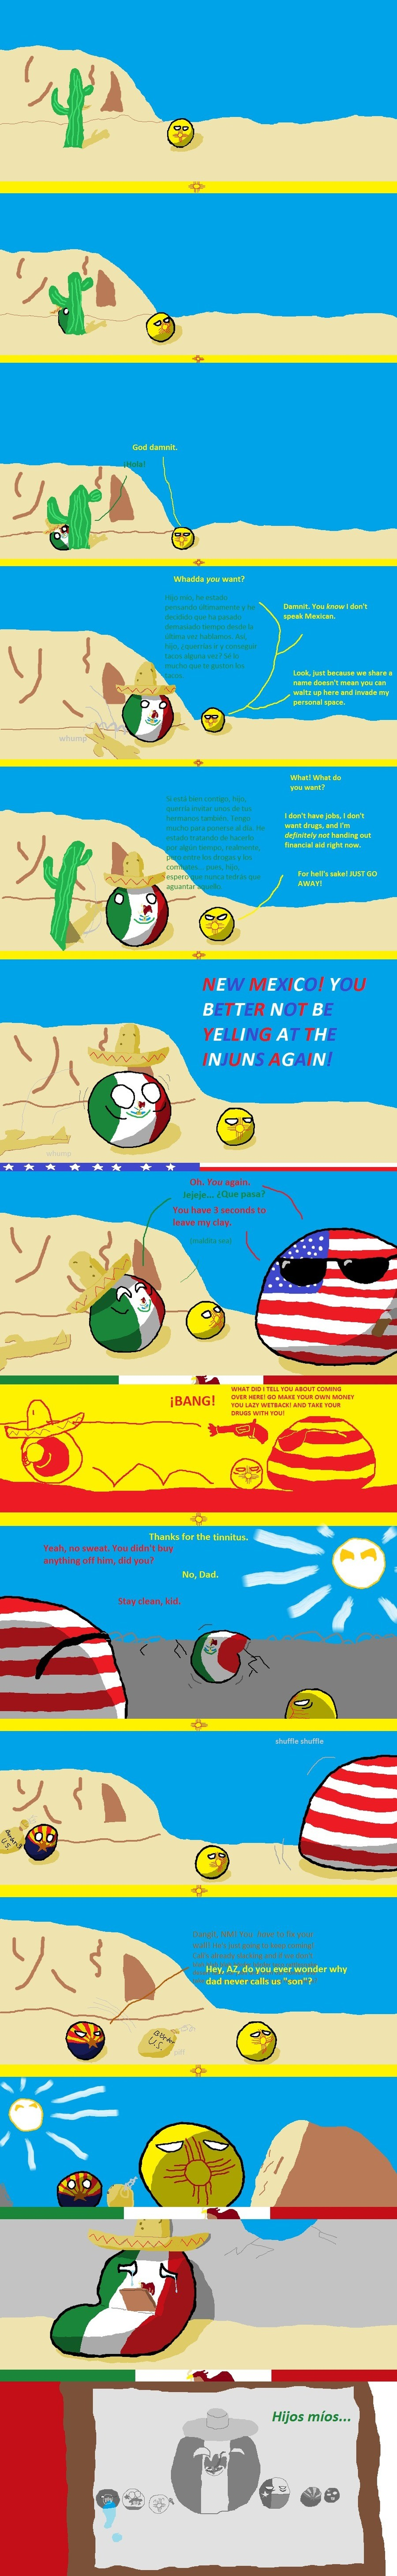 Mexico clay. .. Translation for the not initiated in beanerposting: 1)my son, I've been thinking lately and a lot of time has passed since last time we talked. So, son, would y